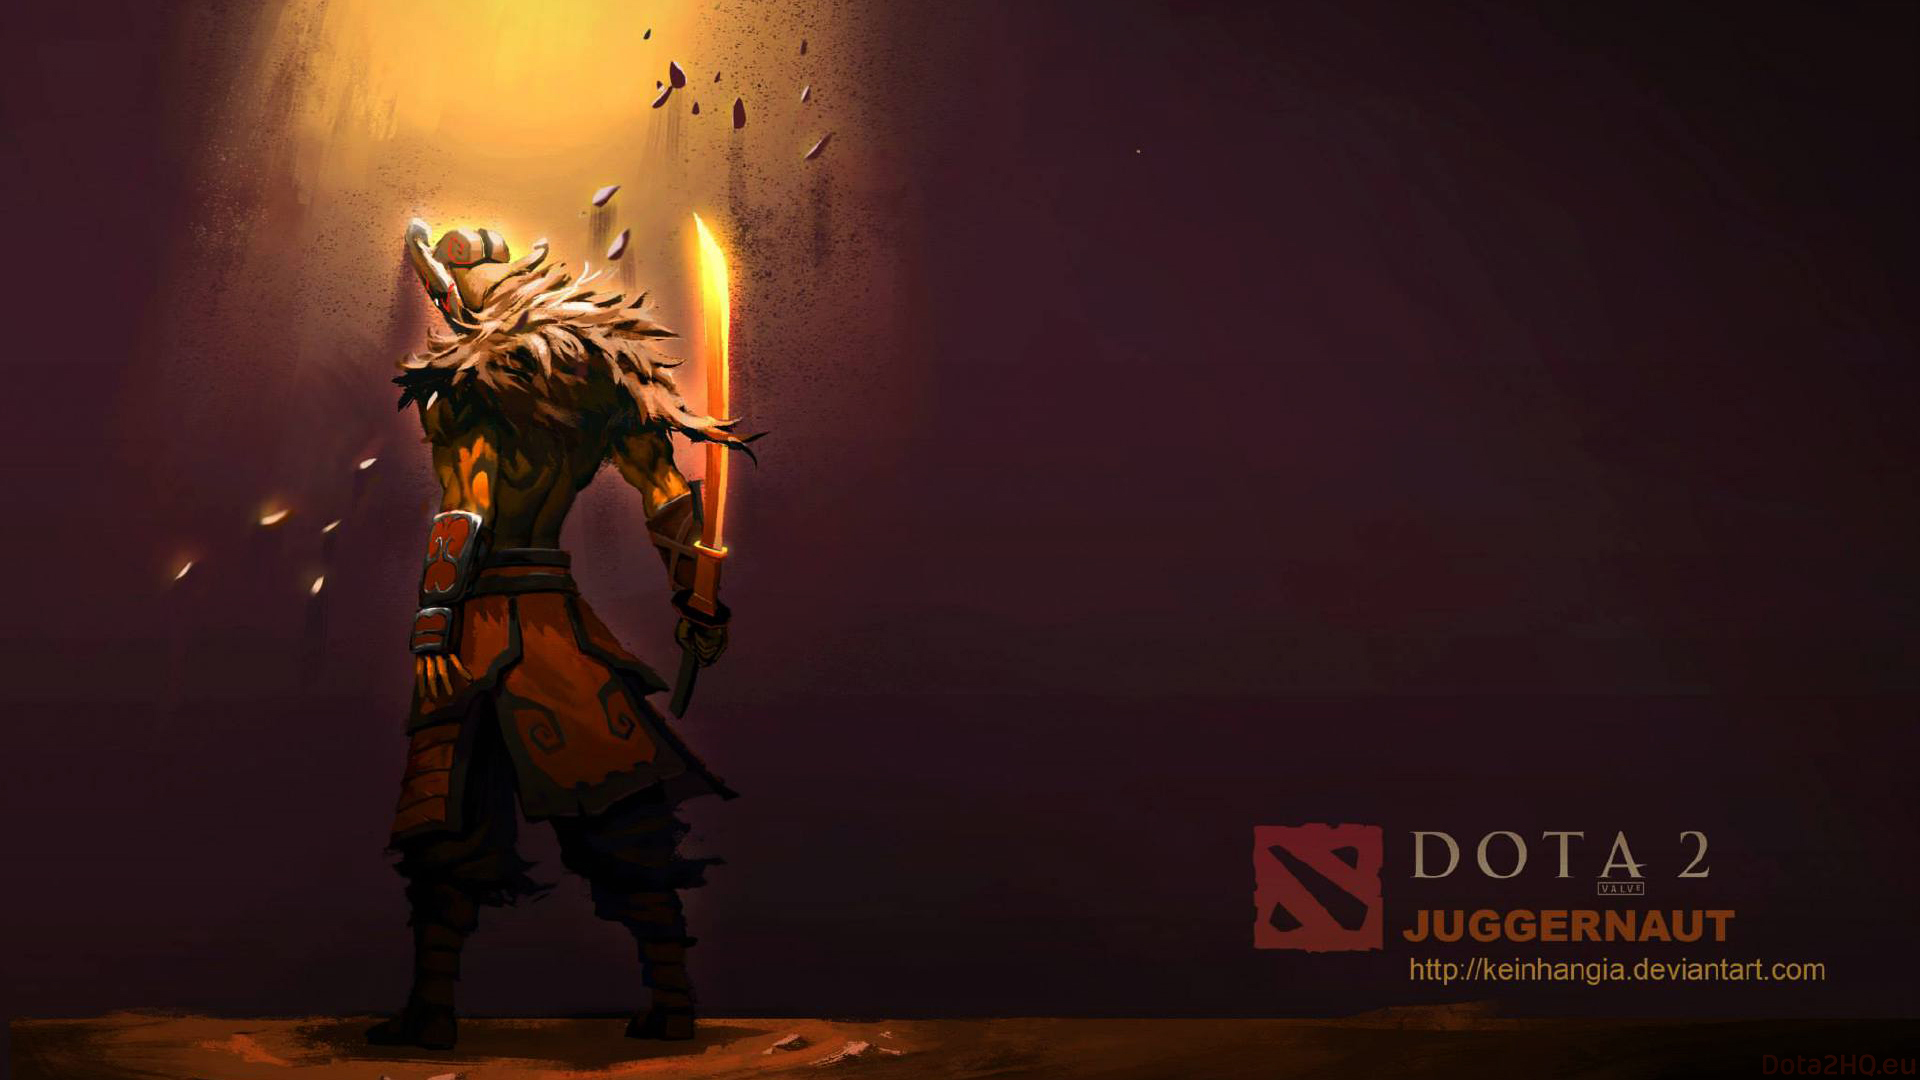 dota 2 game background - photo #31